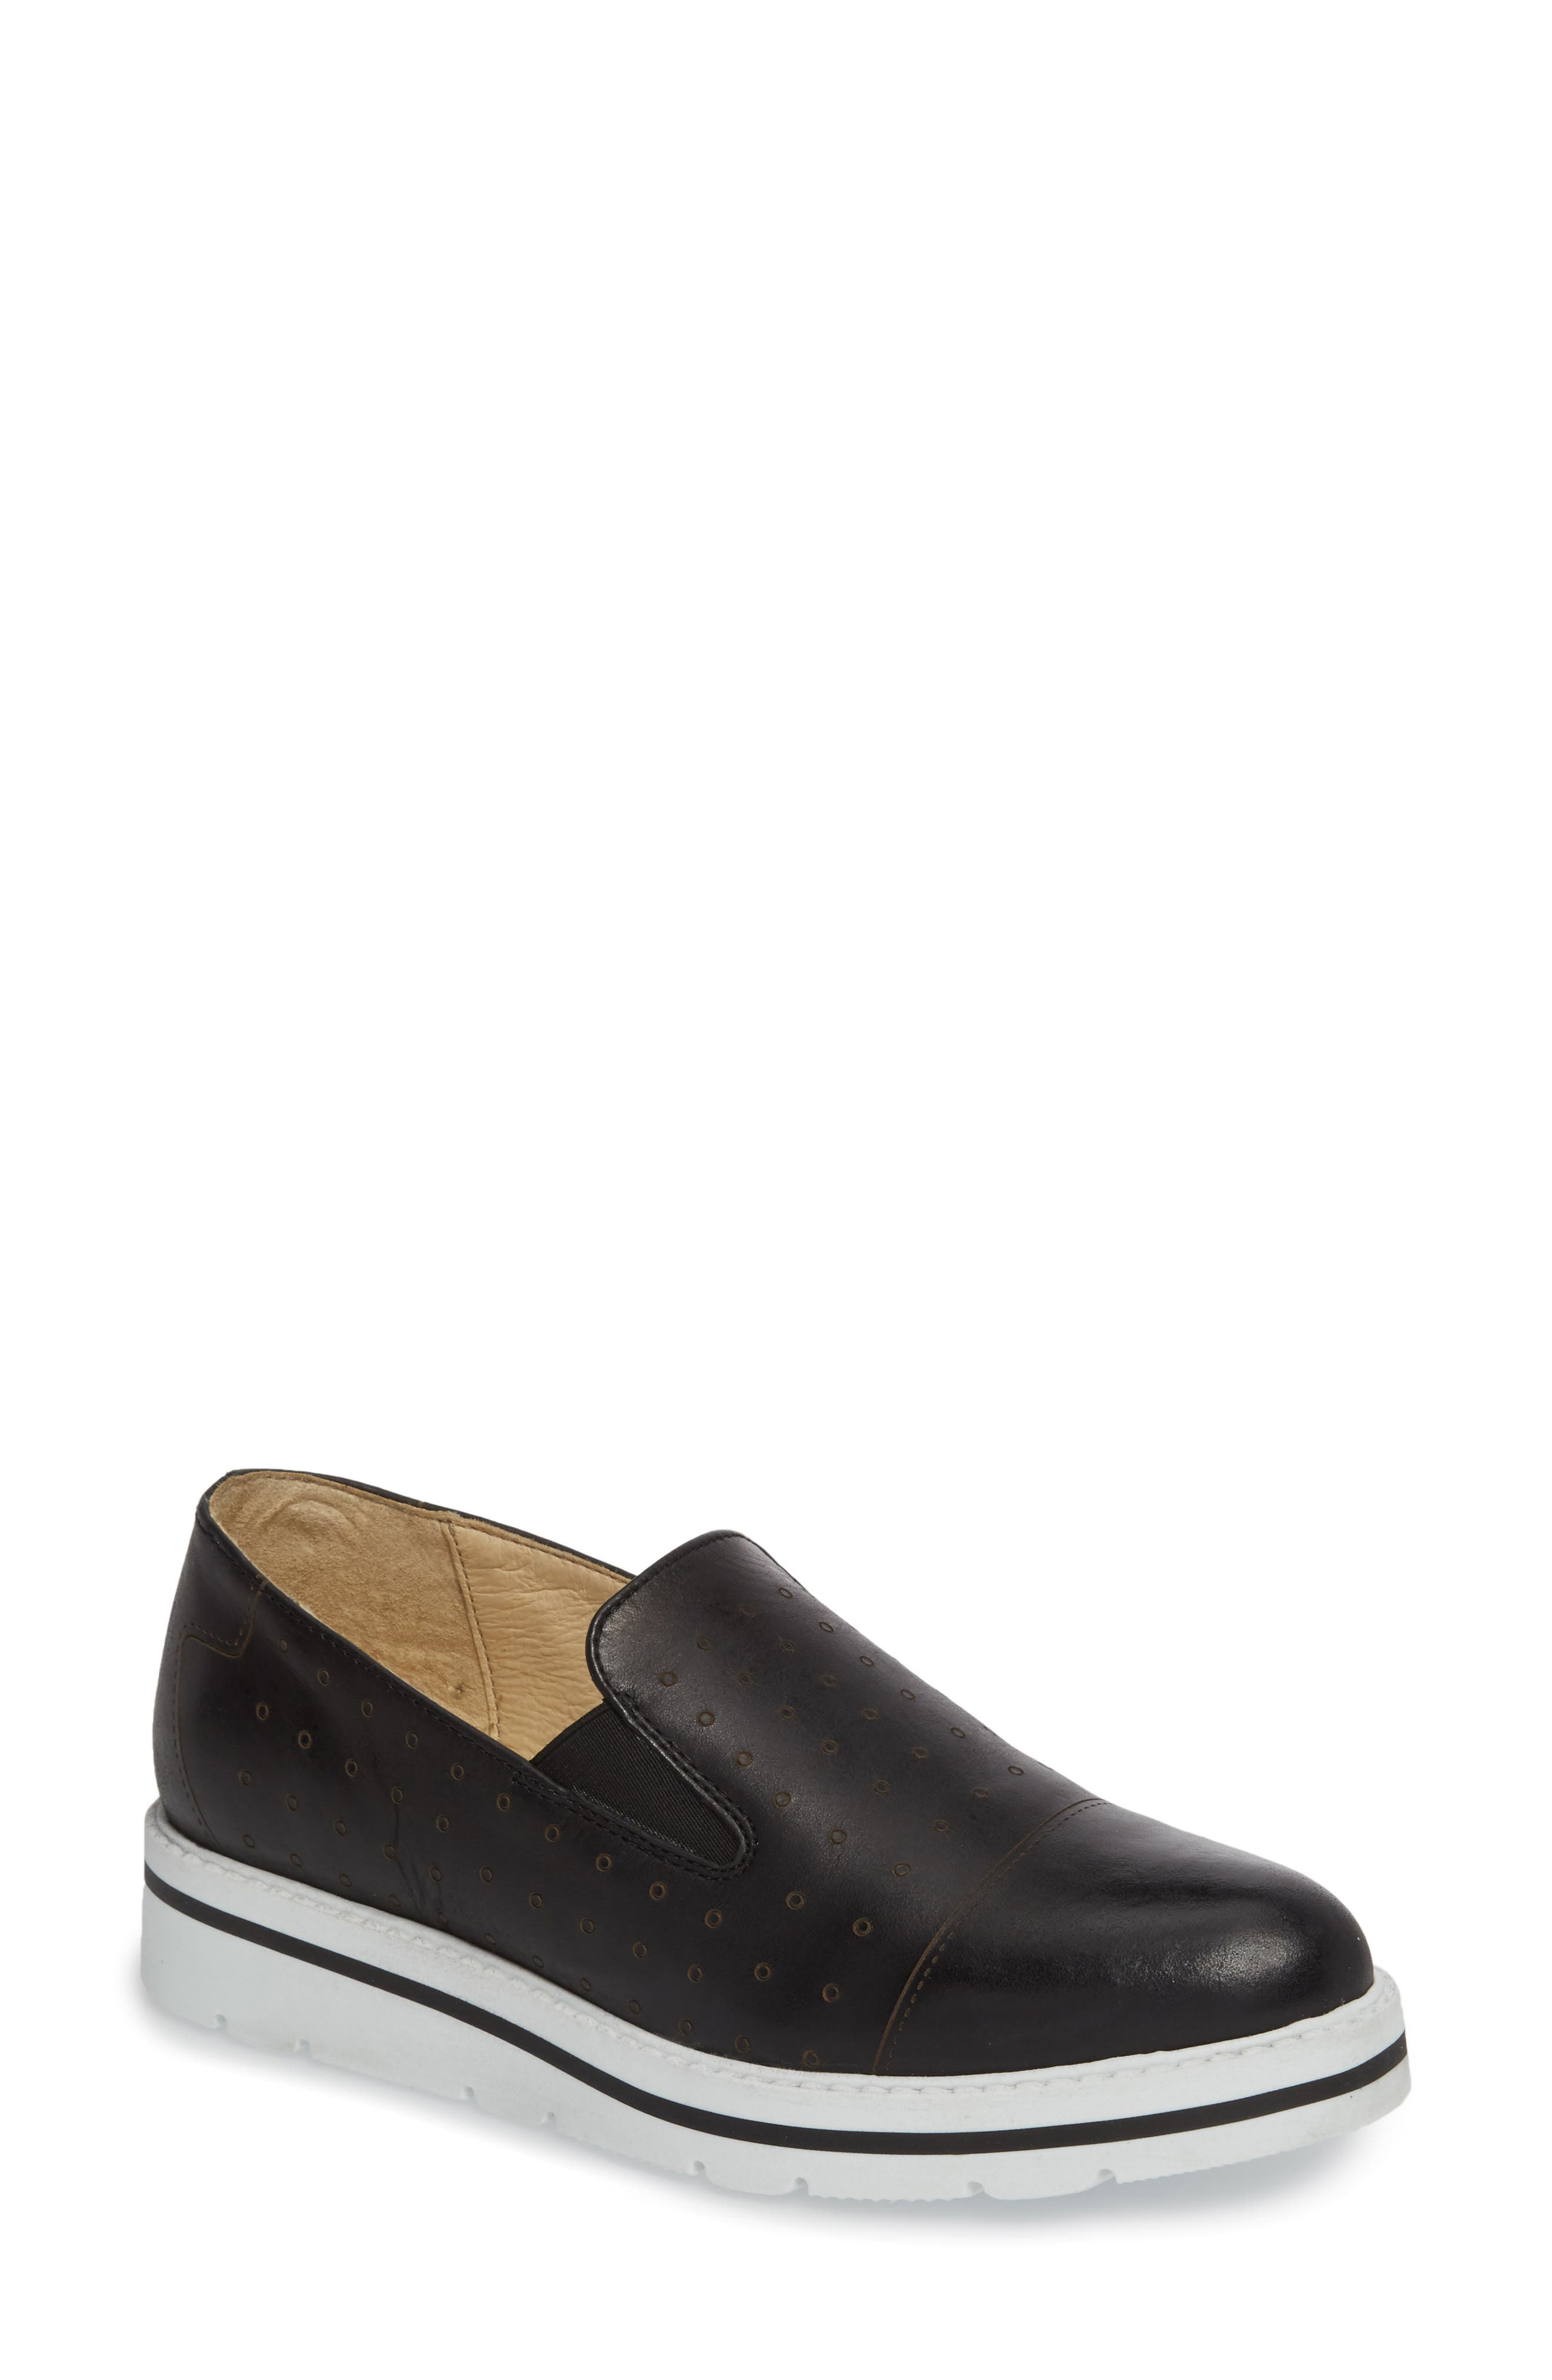 Leigh Slip-On Sneaker,                         Main,                         color, BLACK GLAMOUR LEATHER